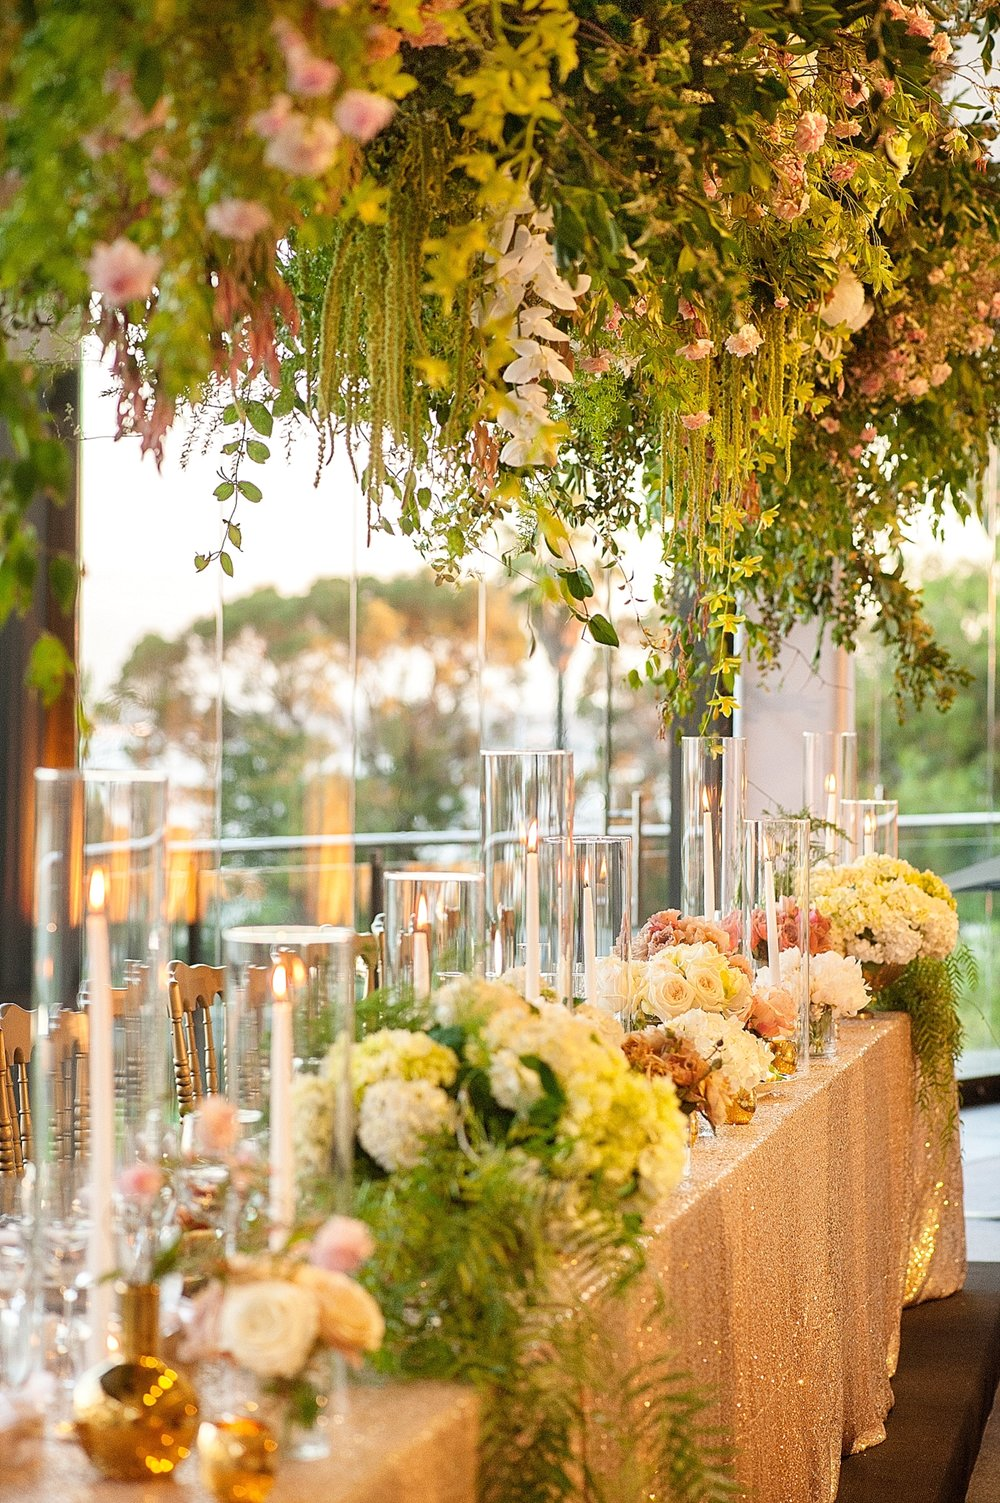 69_hanging floral installation over bridal table wedding perth.jpg